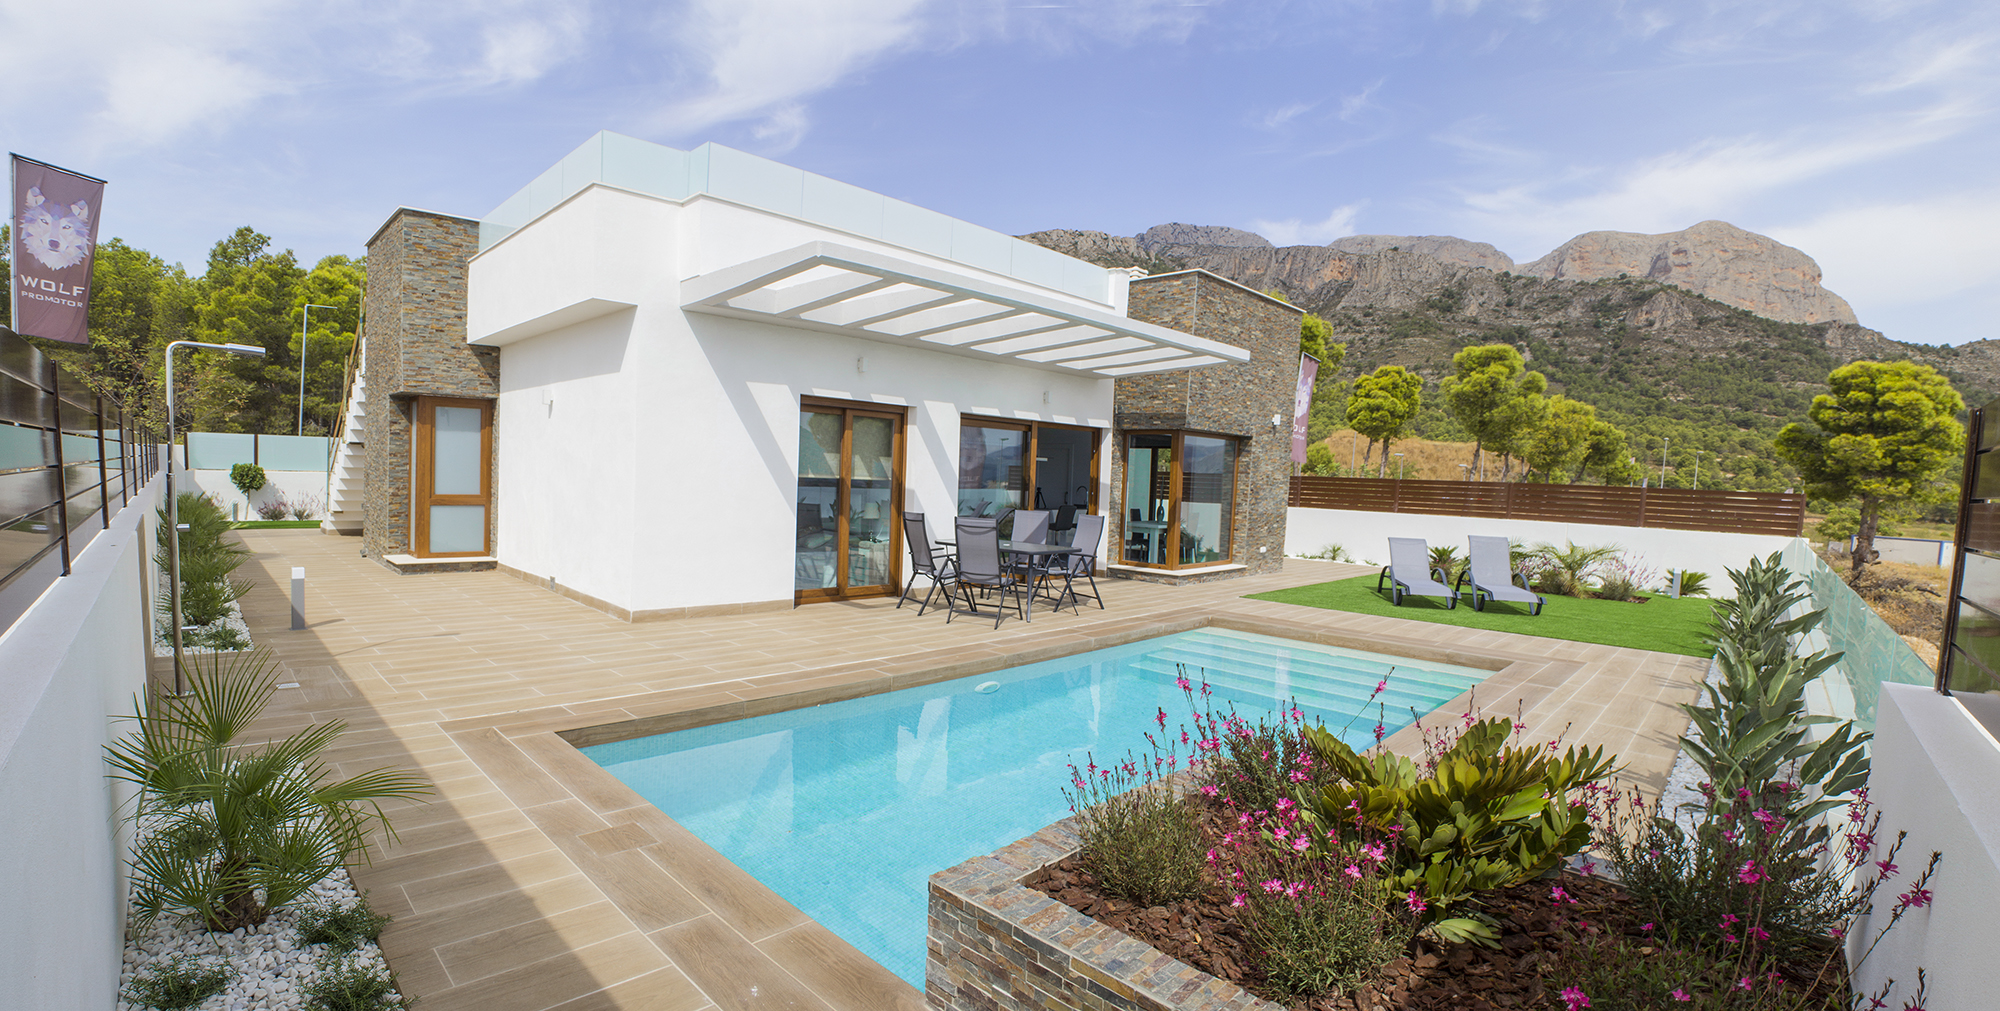 3 bedroom villa For Sale in Polop - Main Image